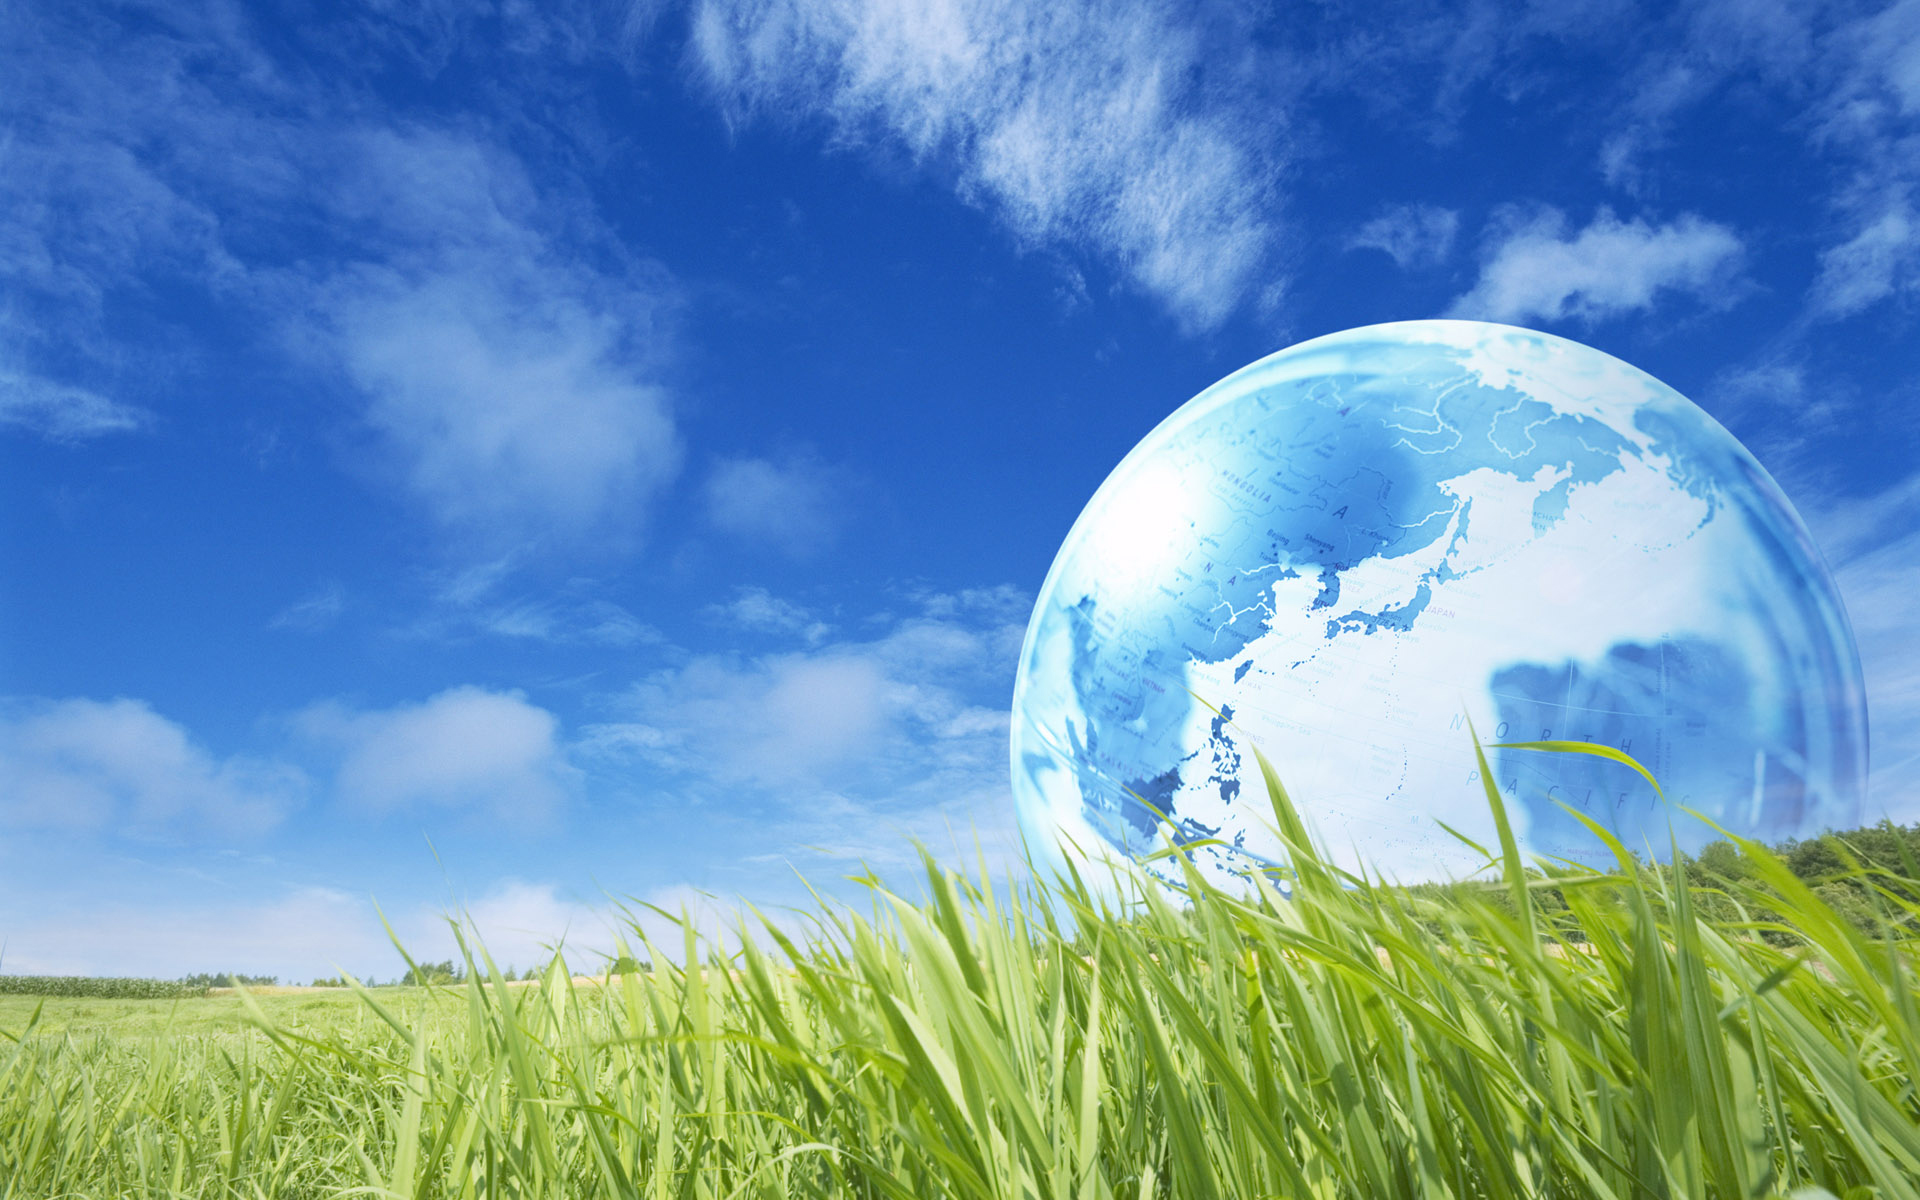 Grass background with Globe transparent image